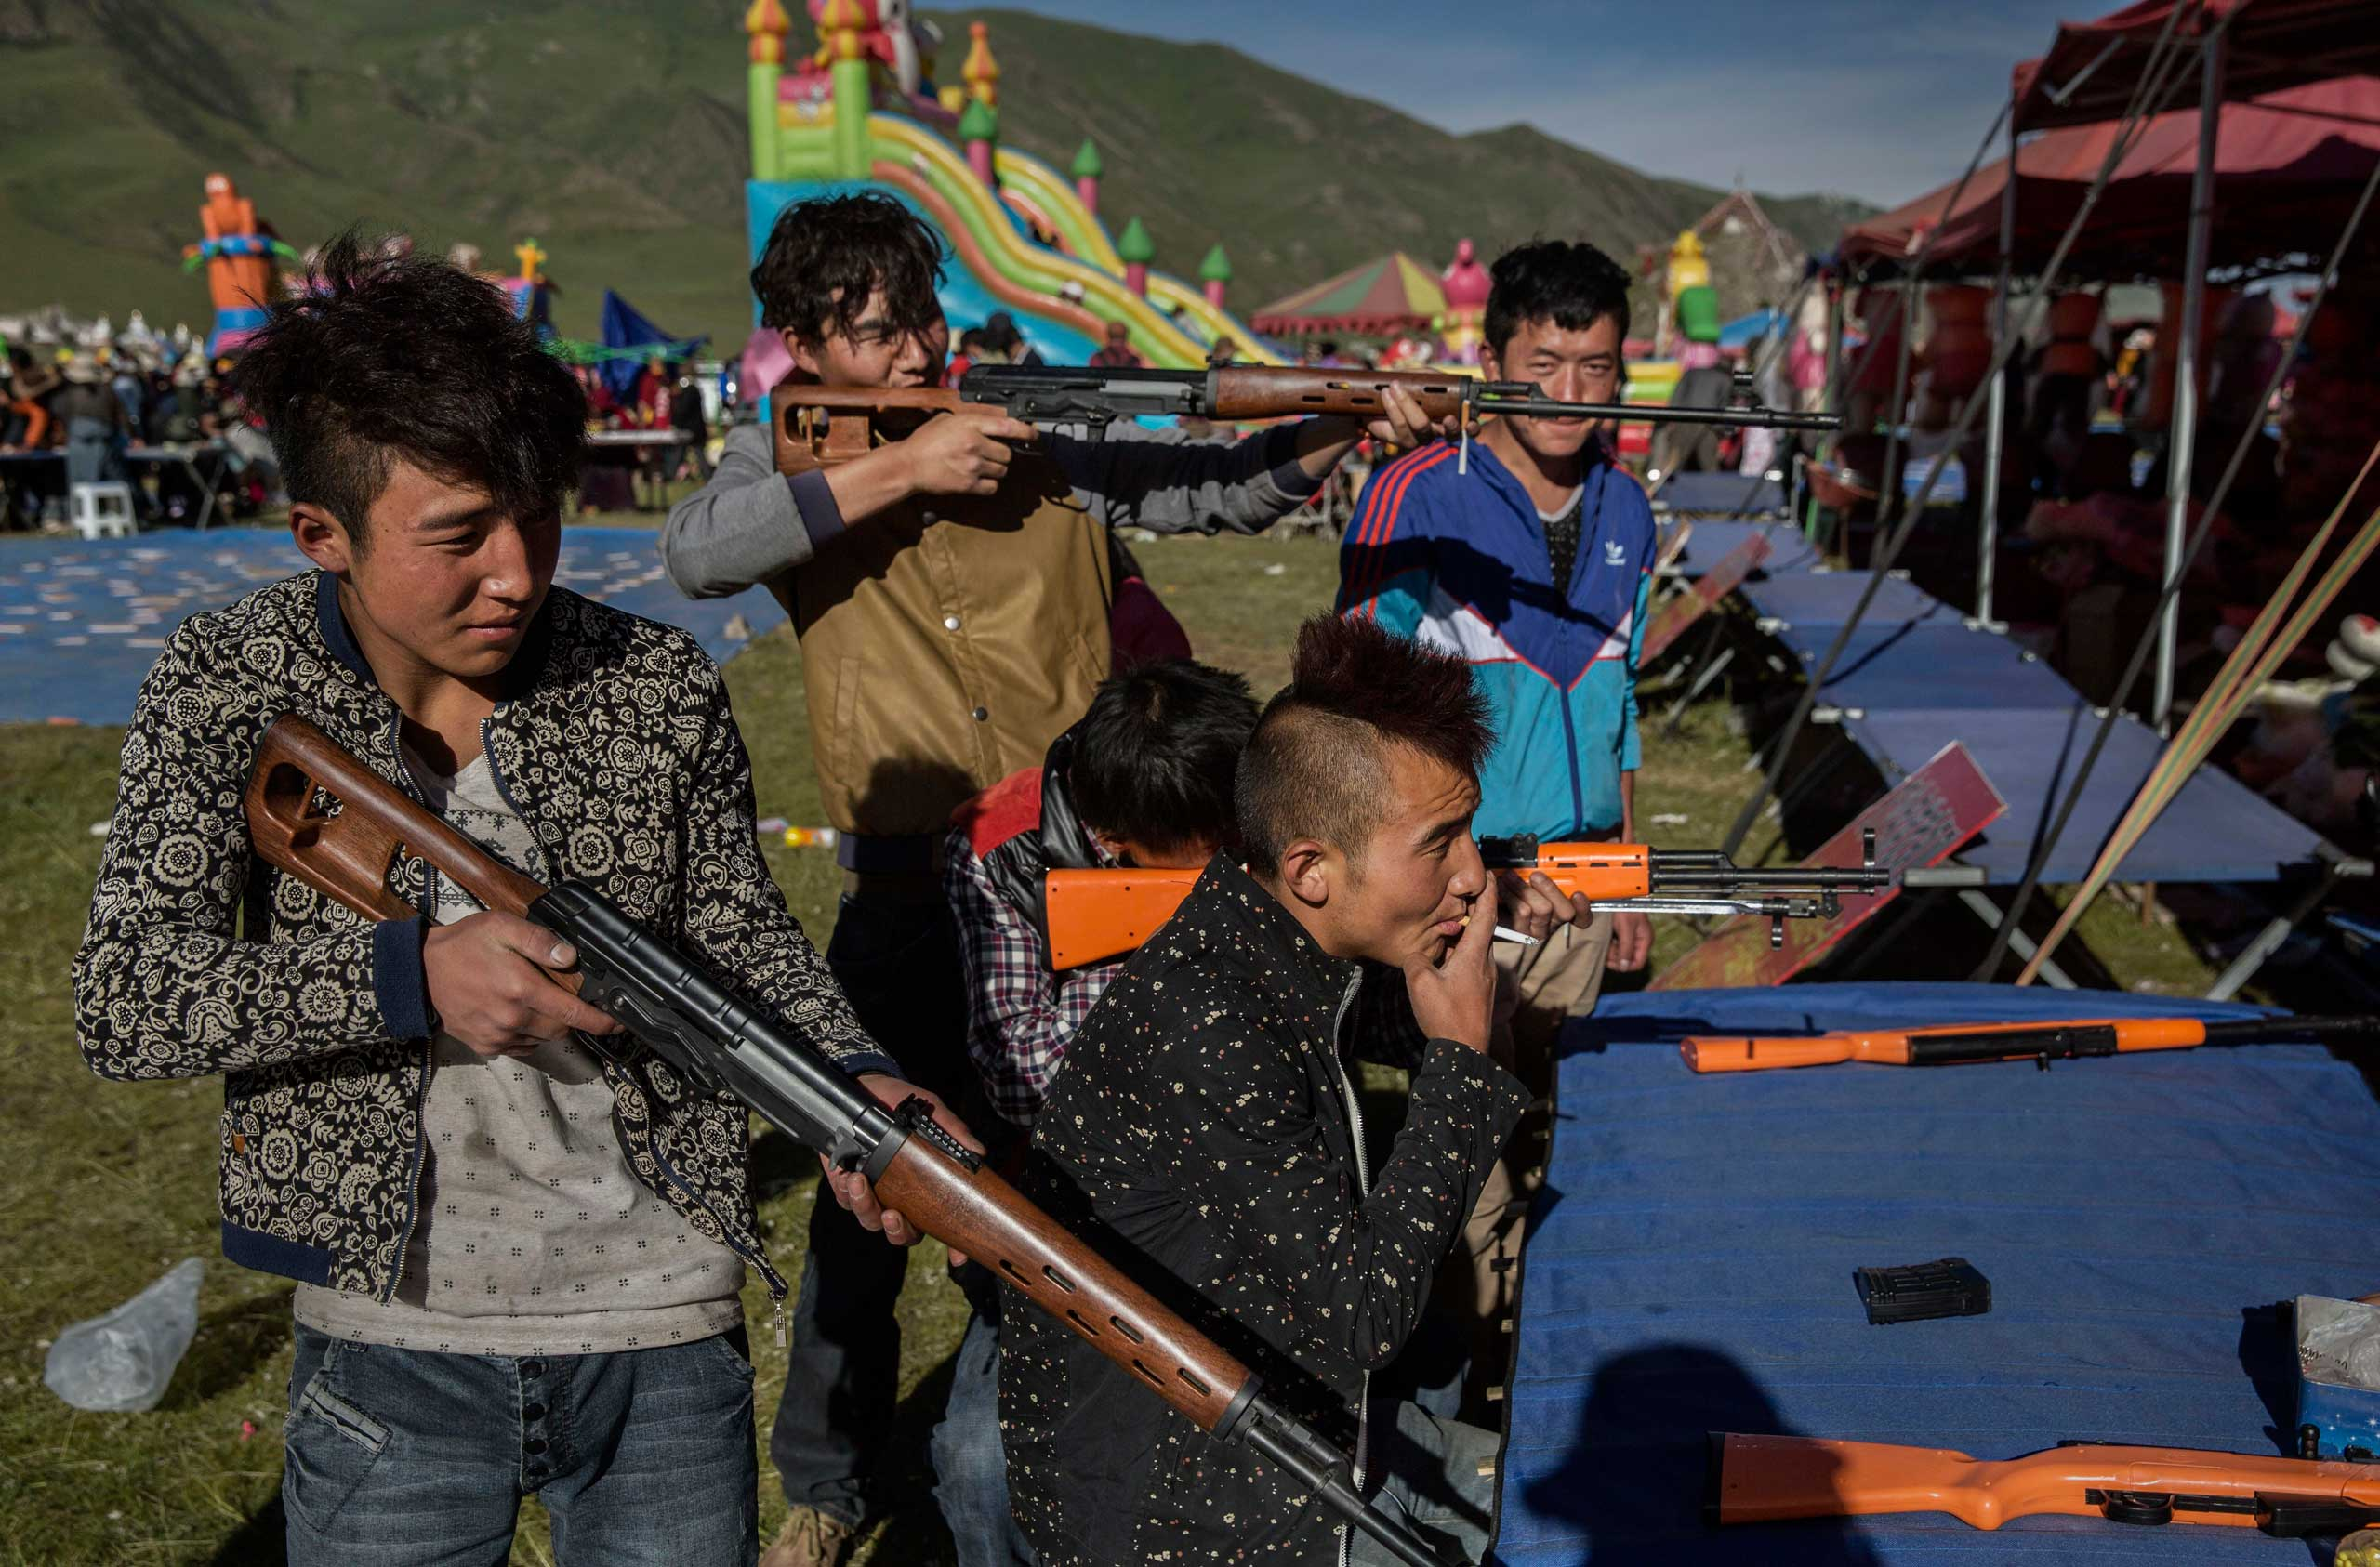 Tibetan youths hold air rifles as they play a game at a local festival on the Tibetan Plateau in Yushu County, on July 26, 2015.